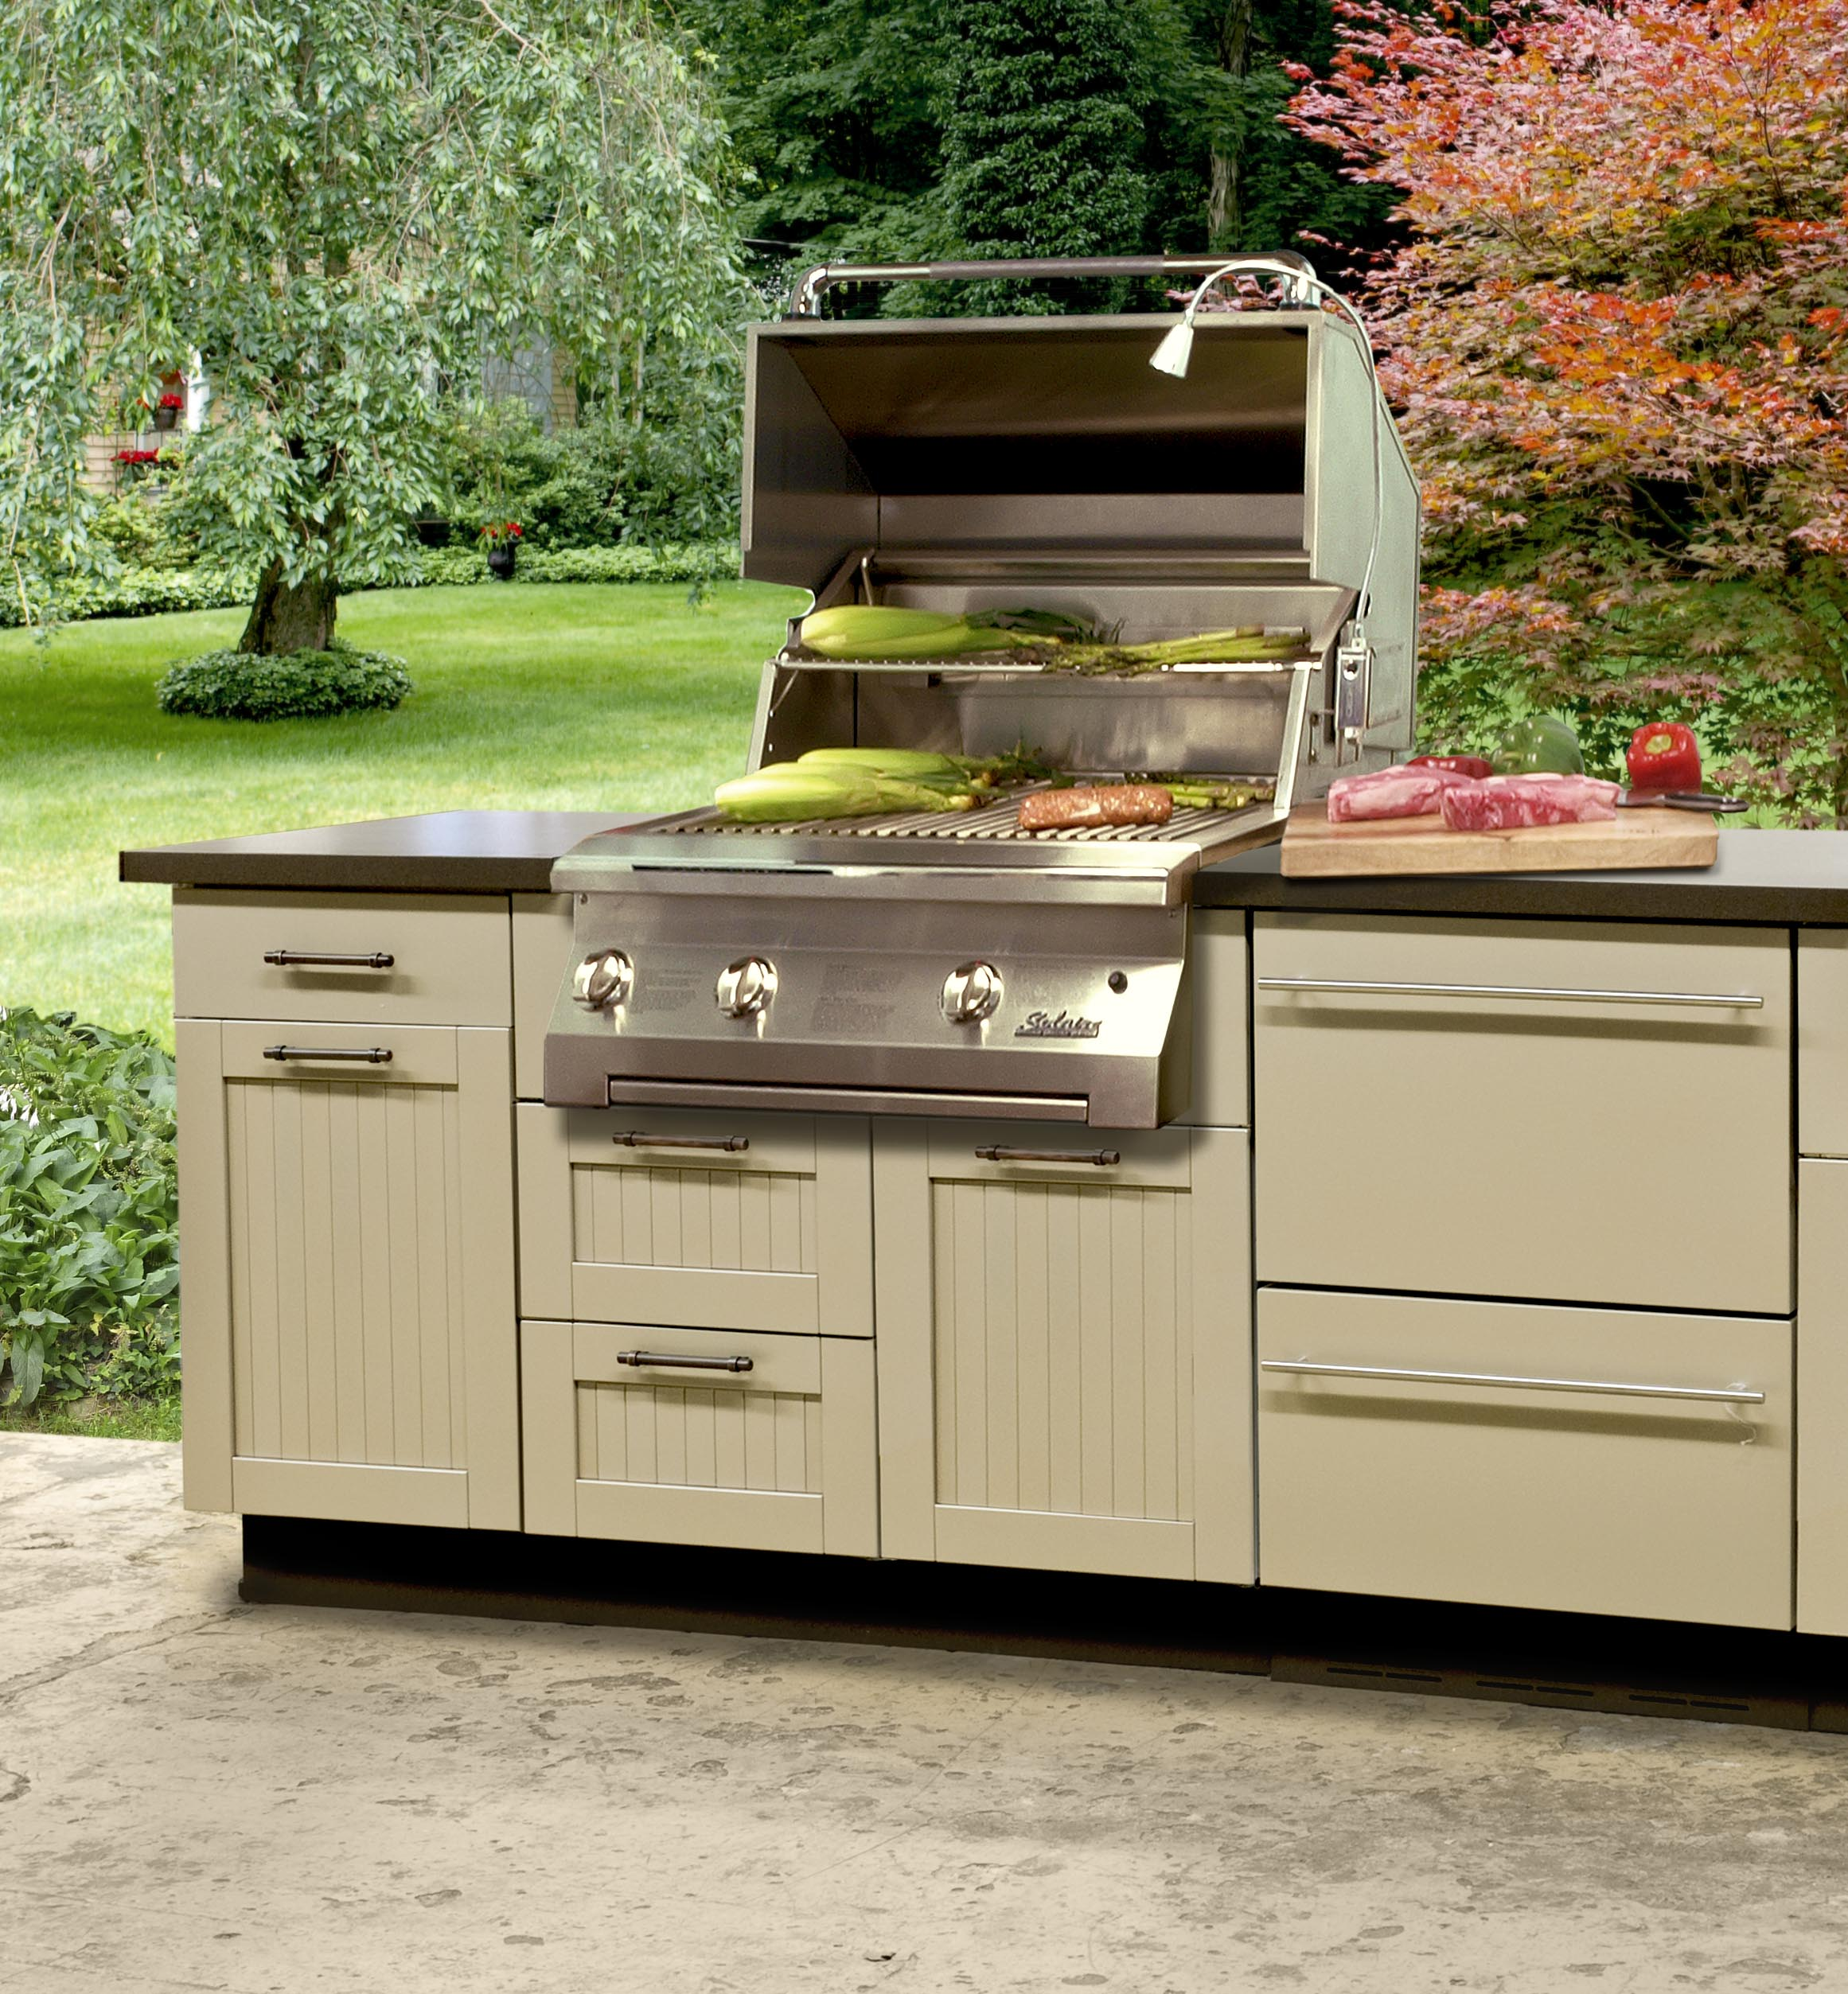 Outdoor kitchen lowes best suited to offer you top notch for Kitchen outdoor picture